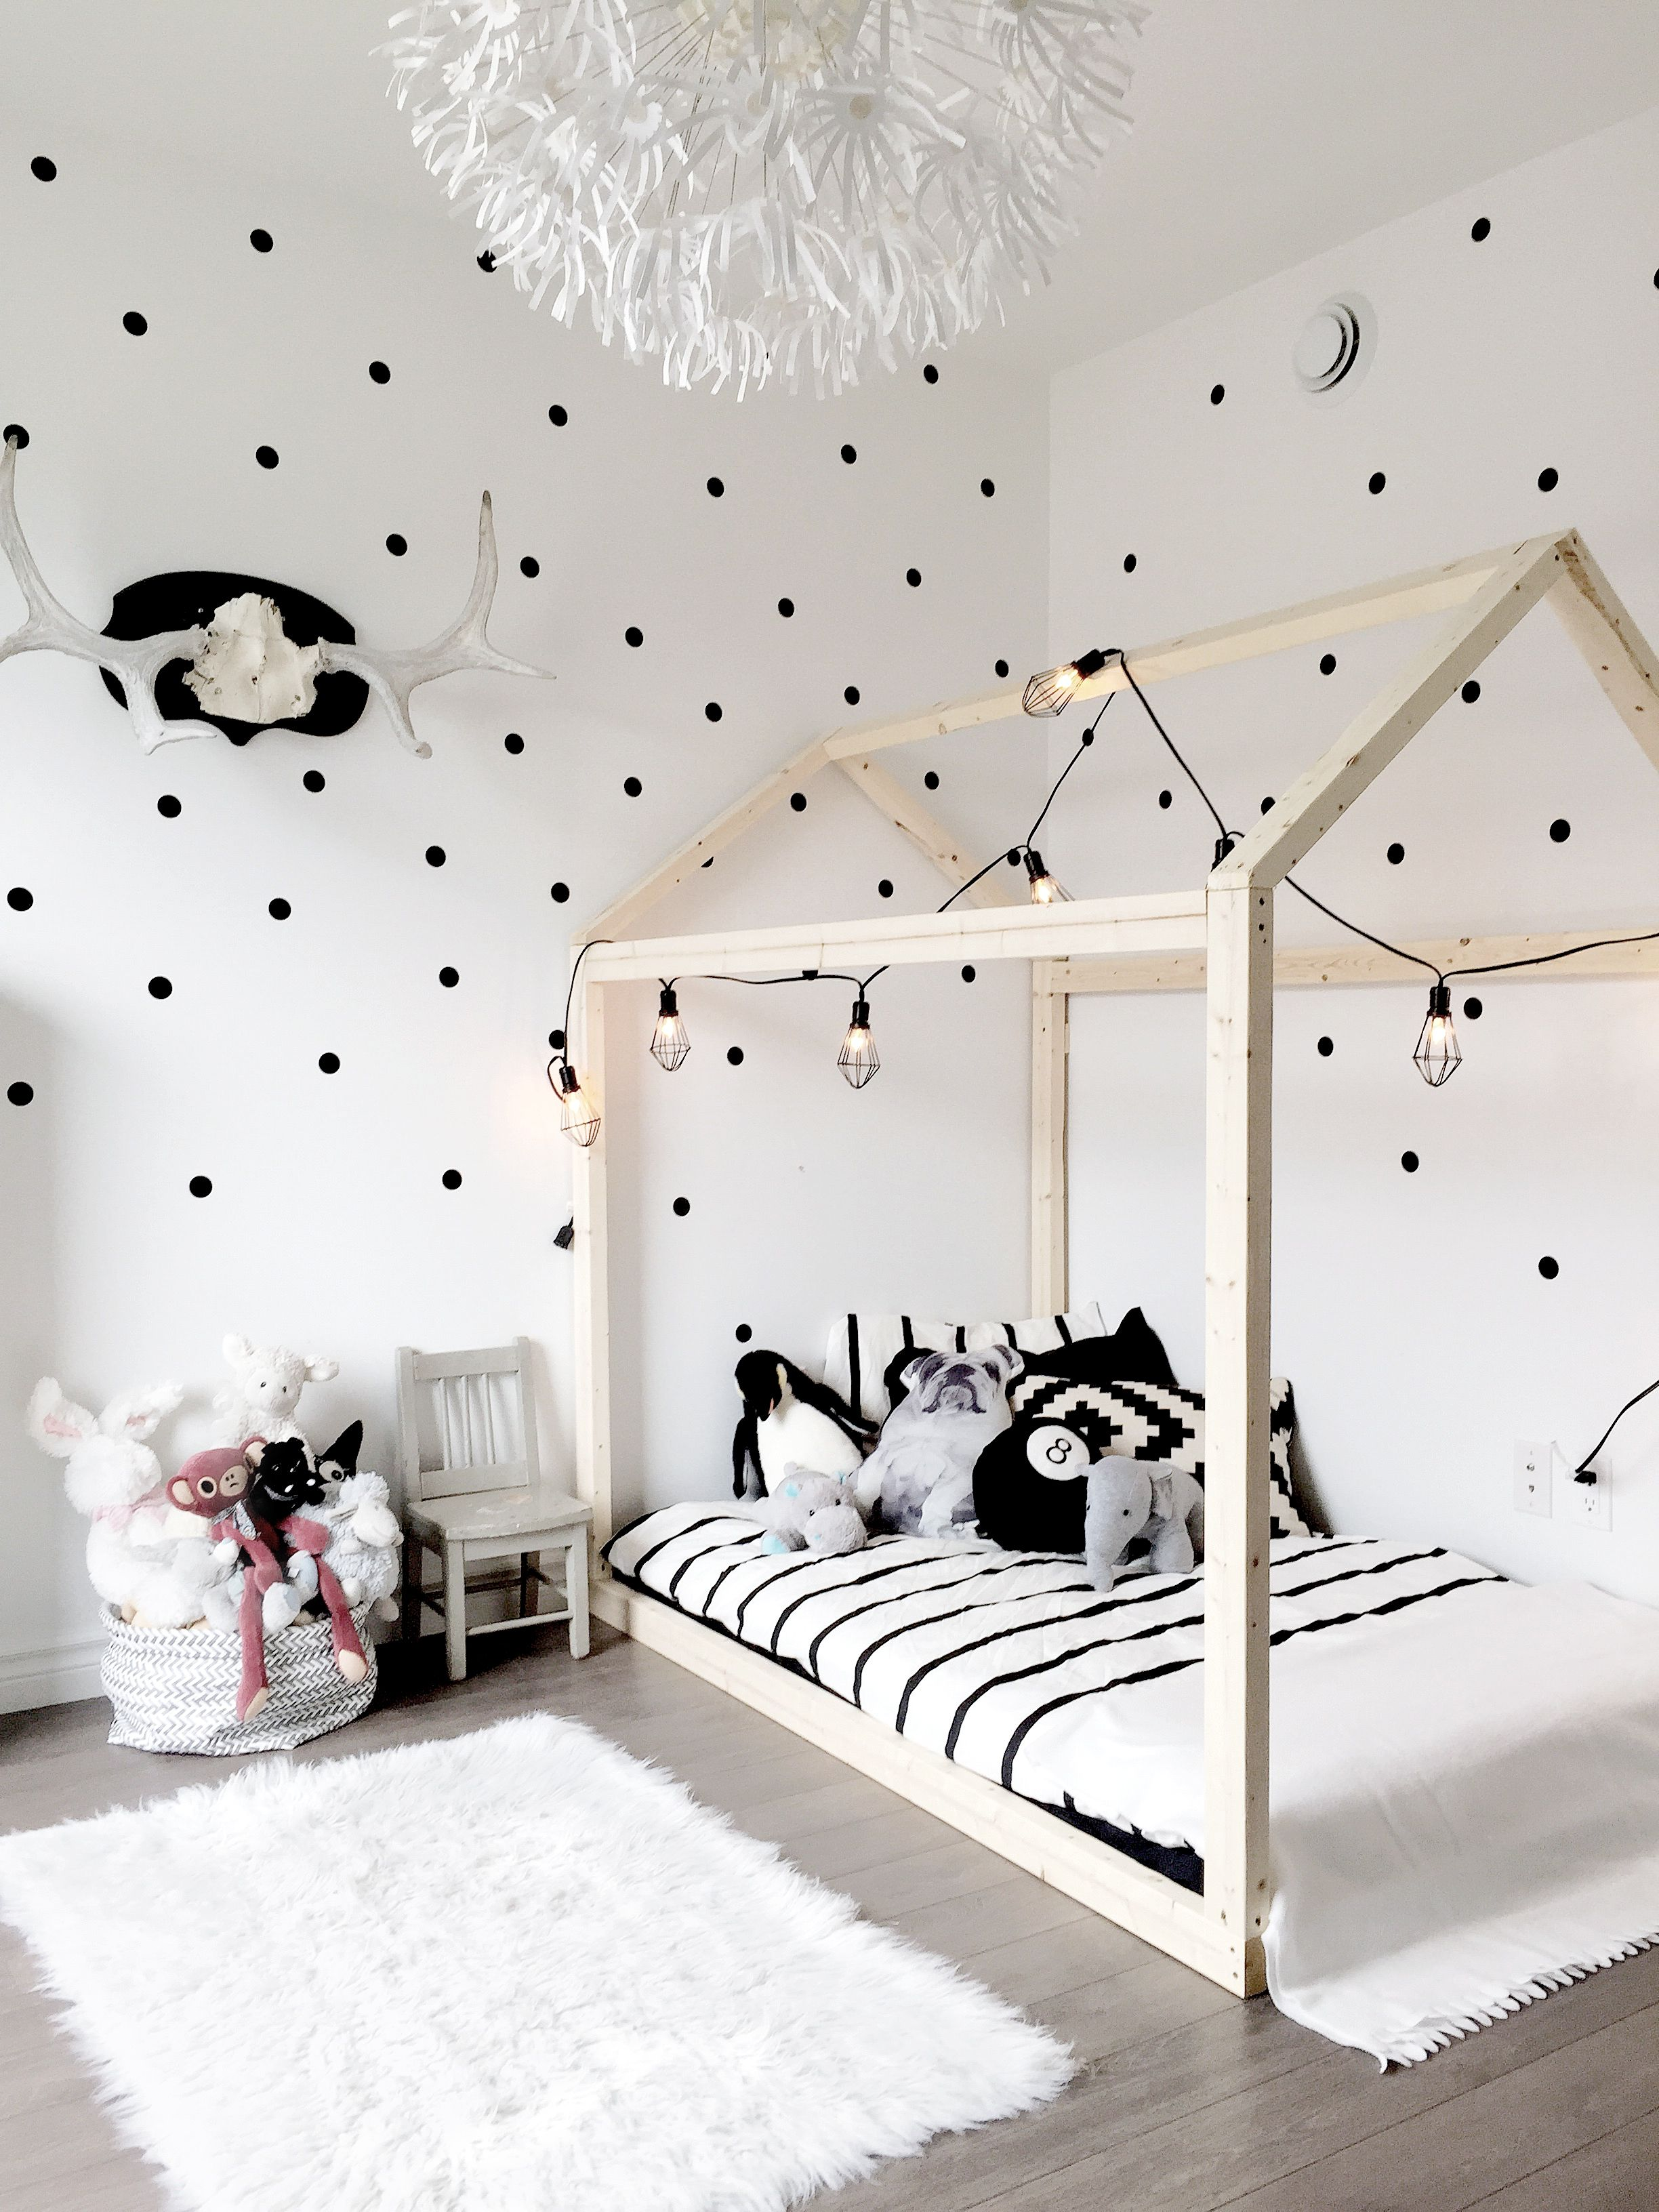 You Want Redecorate Your Kids Bedroom Visit Circu Net And There You Can Discover The Power Of Magic Worl White Kids Room Scandinavian Kids Rooms Toddler Rooms